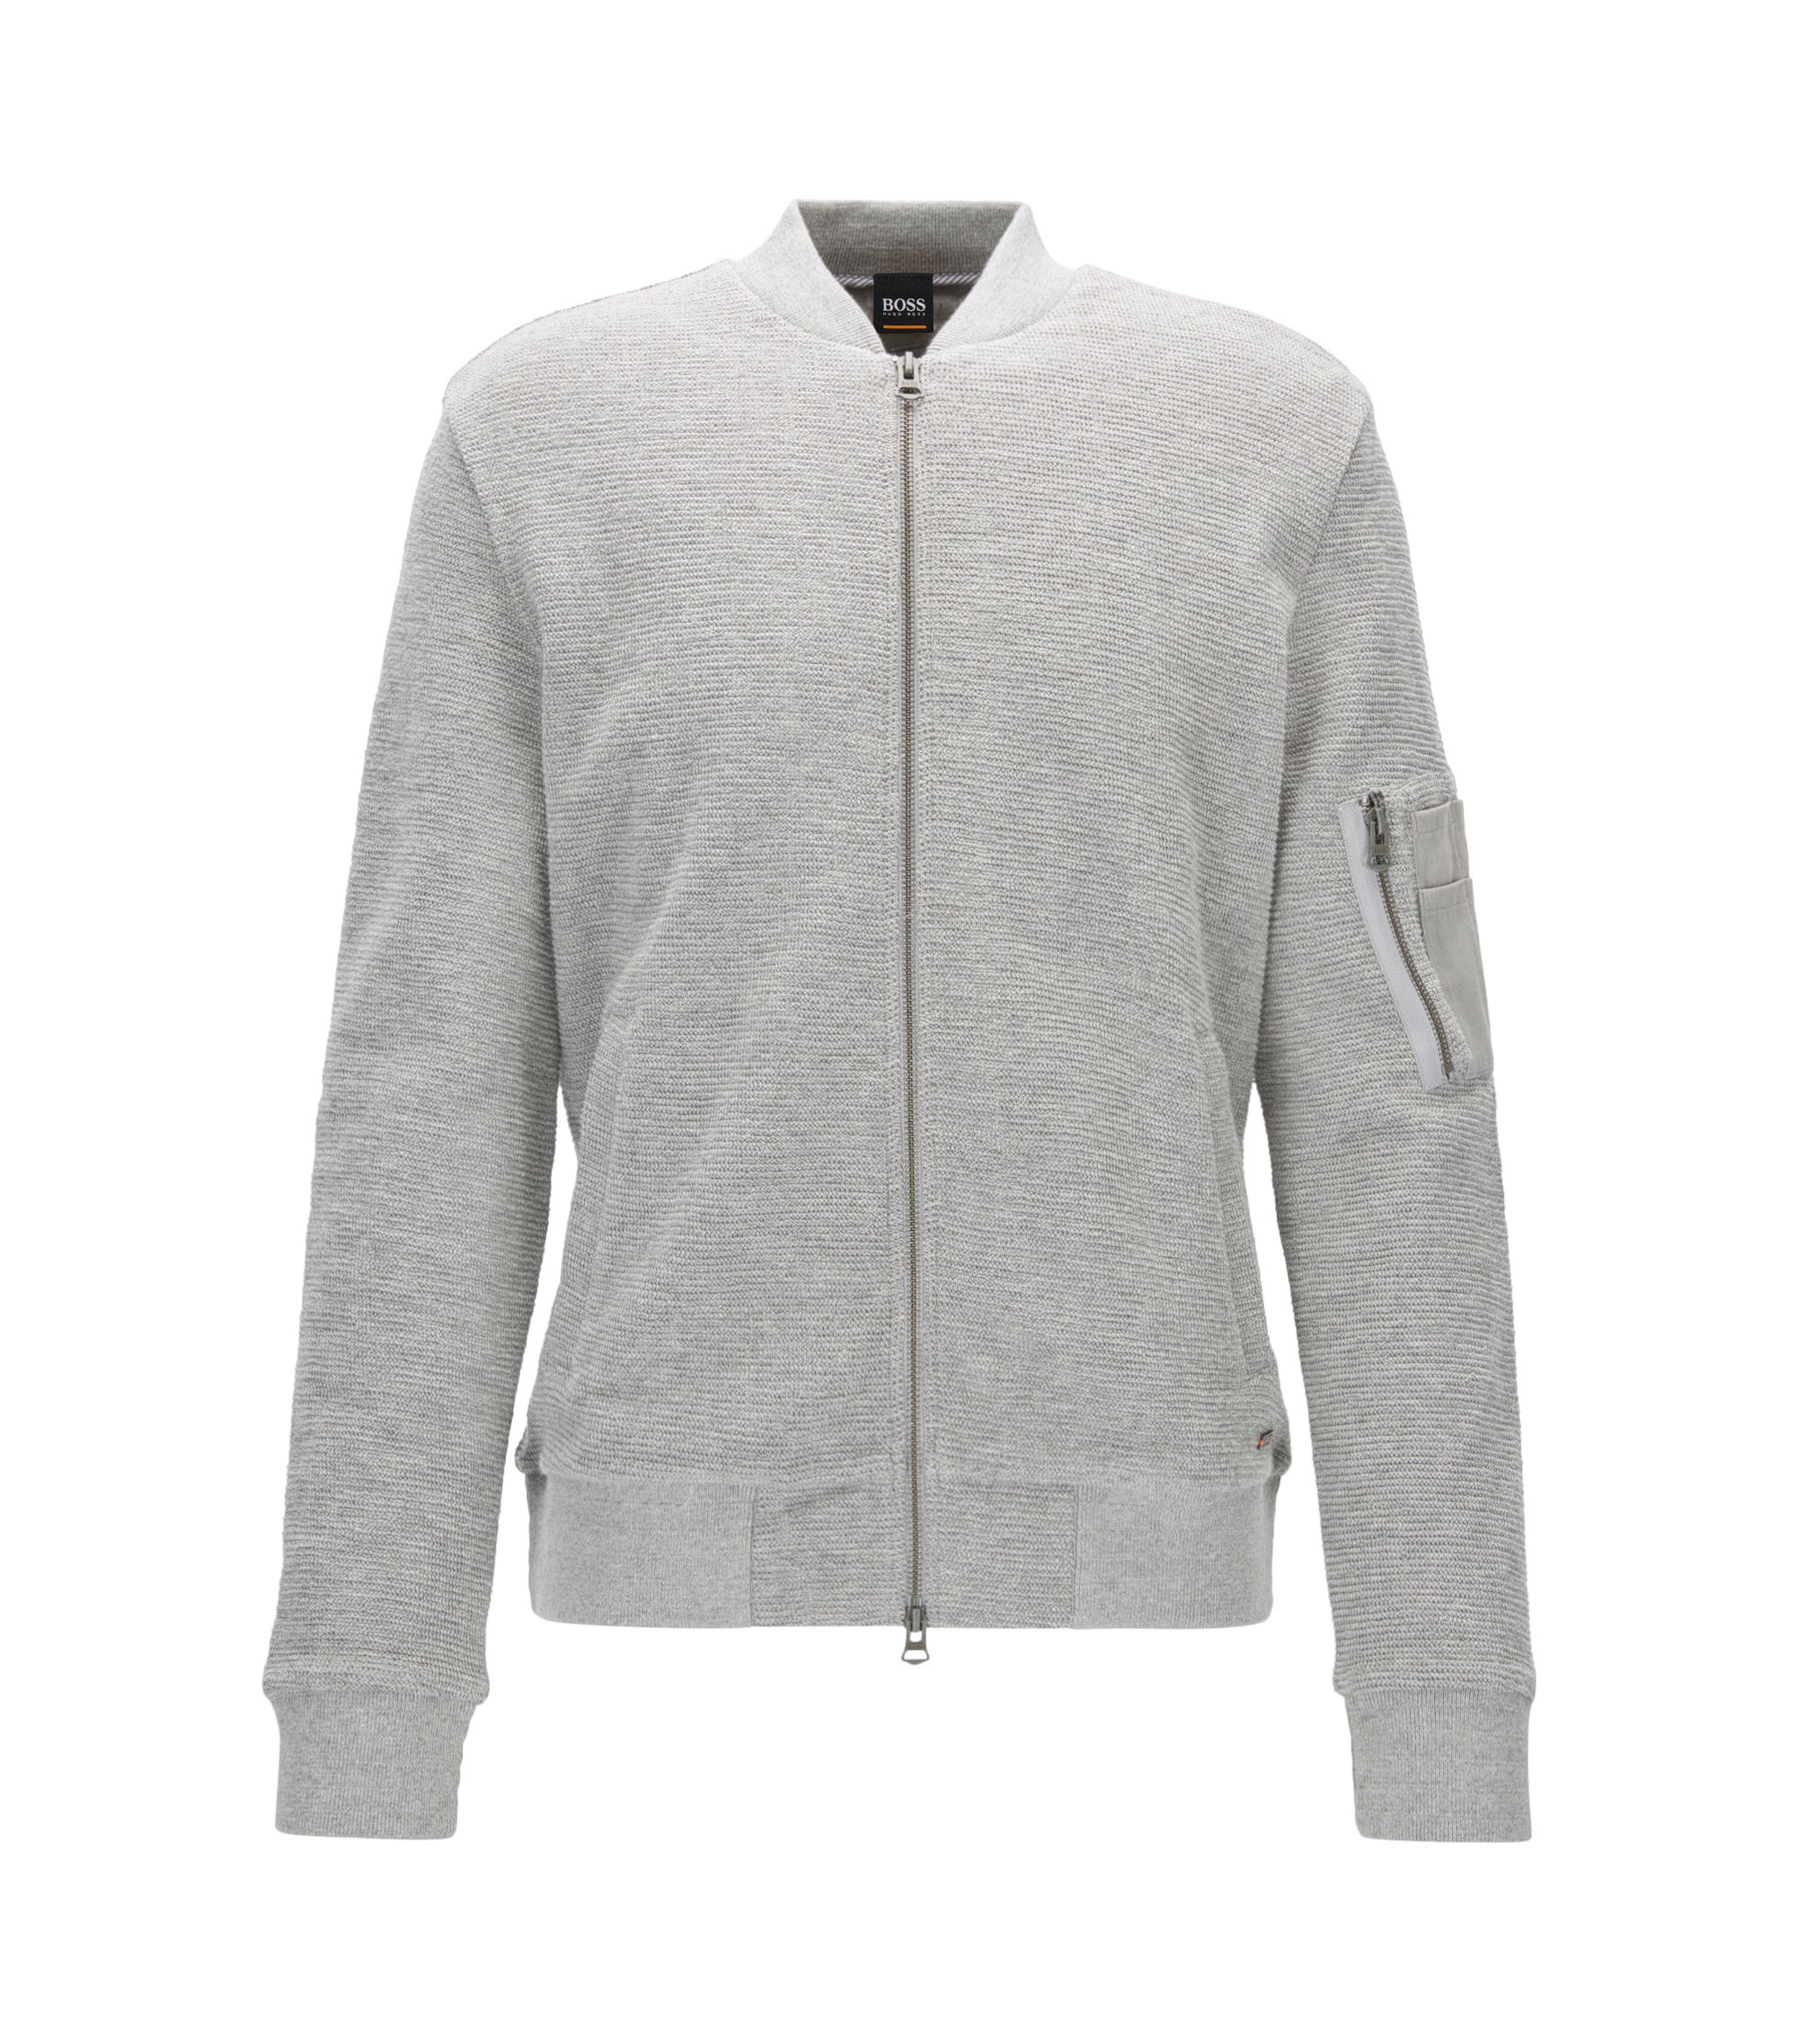 Bomber-style sweatshirt in cotton jacquard, Light Grey